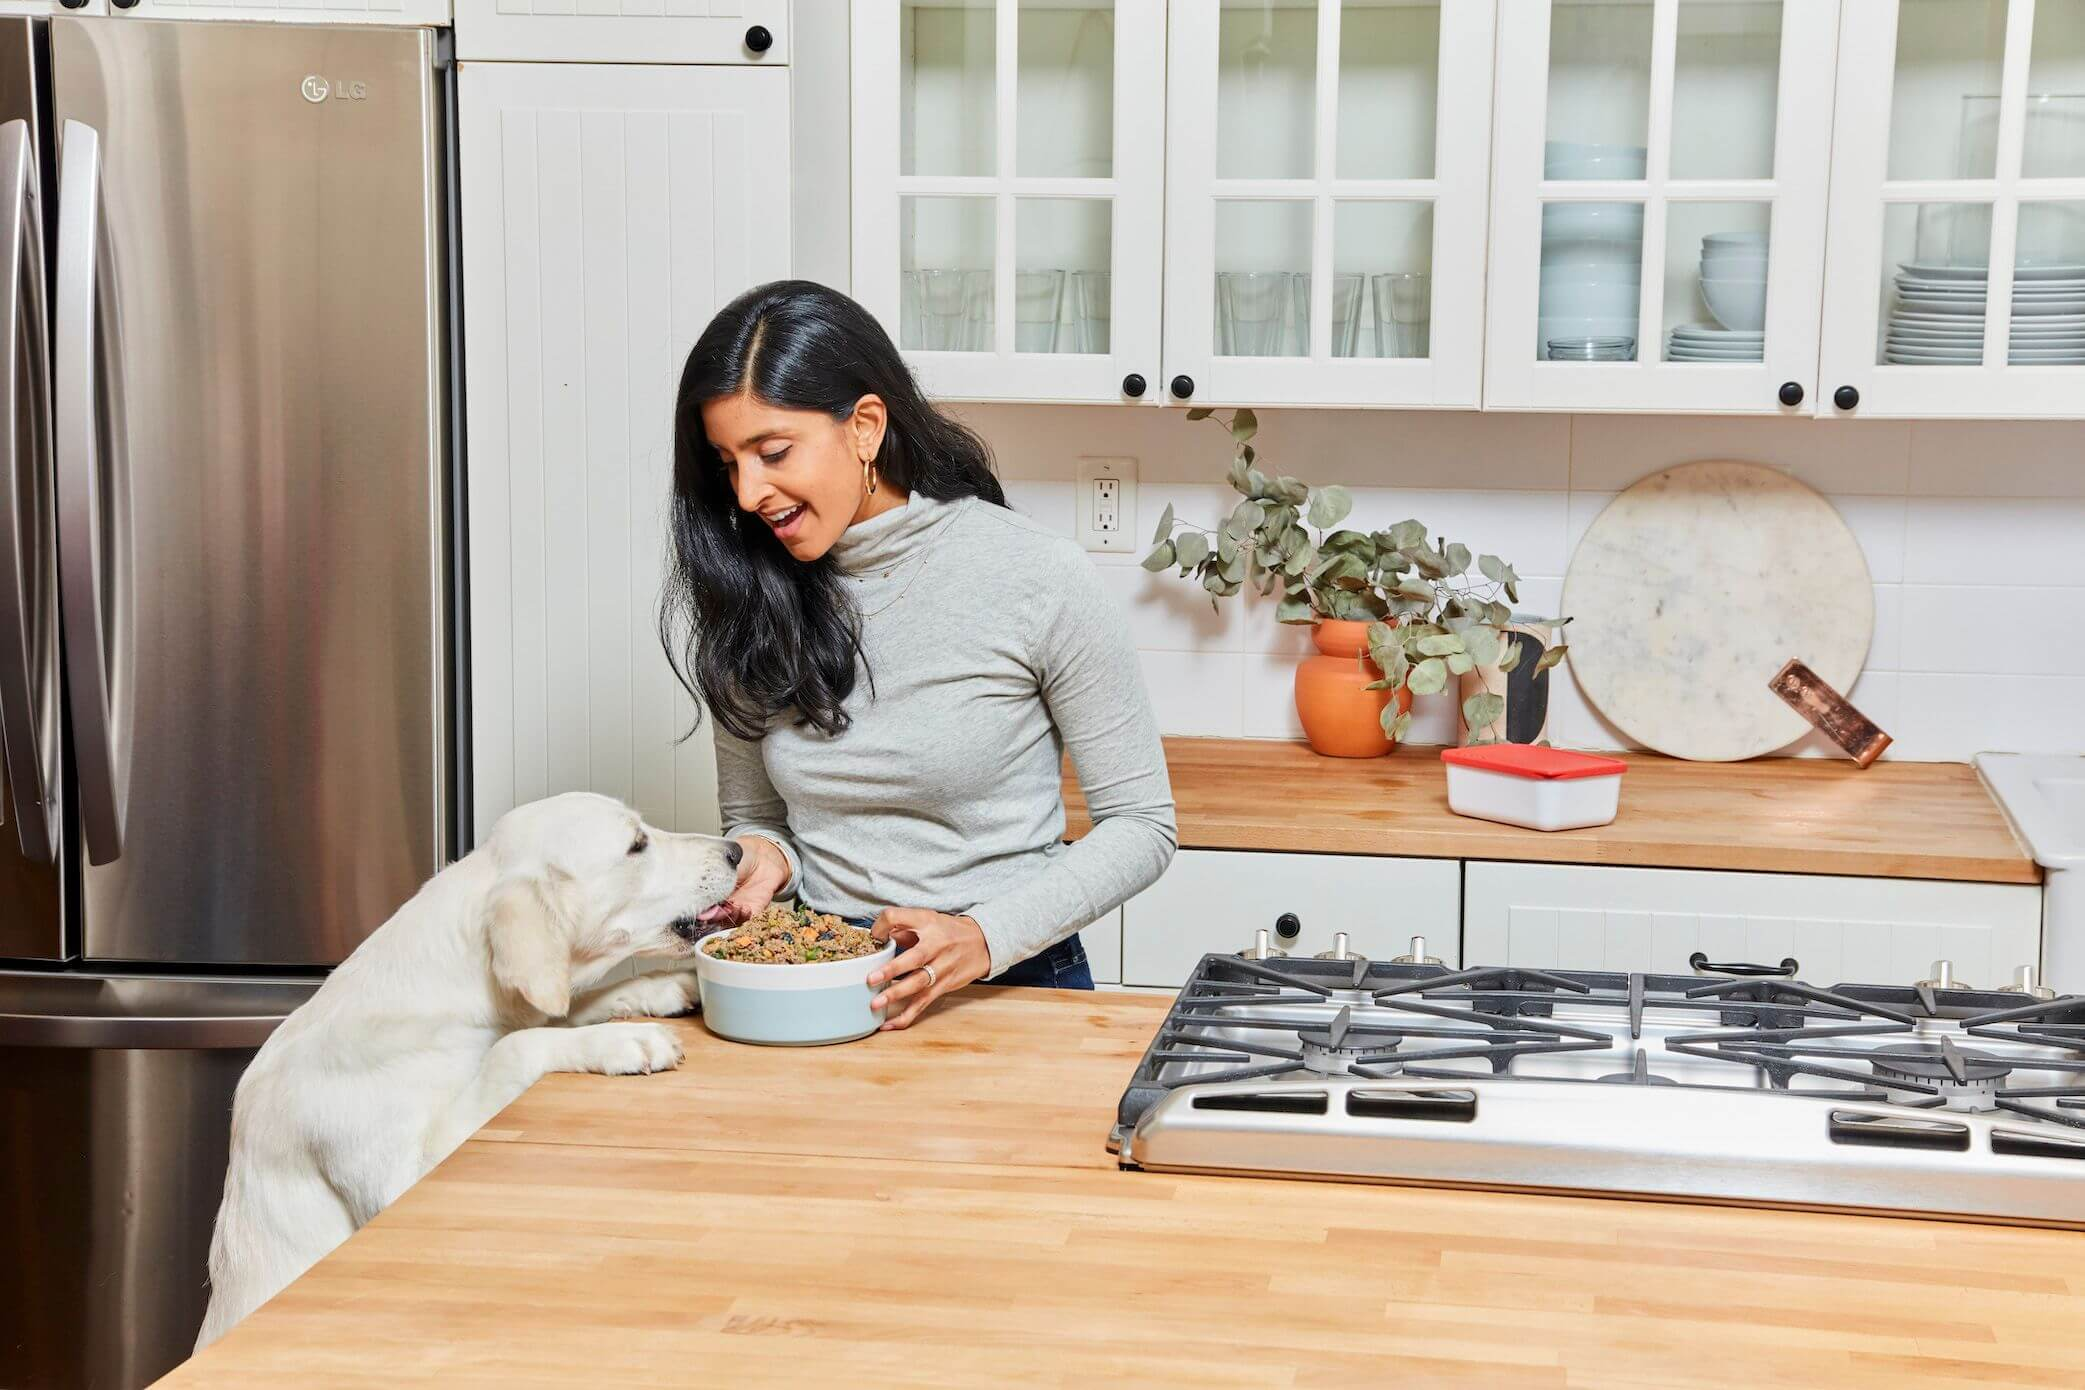 woman-feeds-her-white-dog-from-counter-in-crisp-white-kitchen--1-